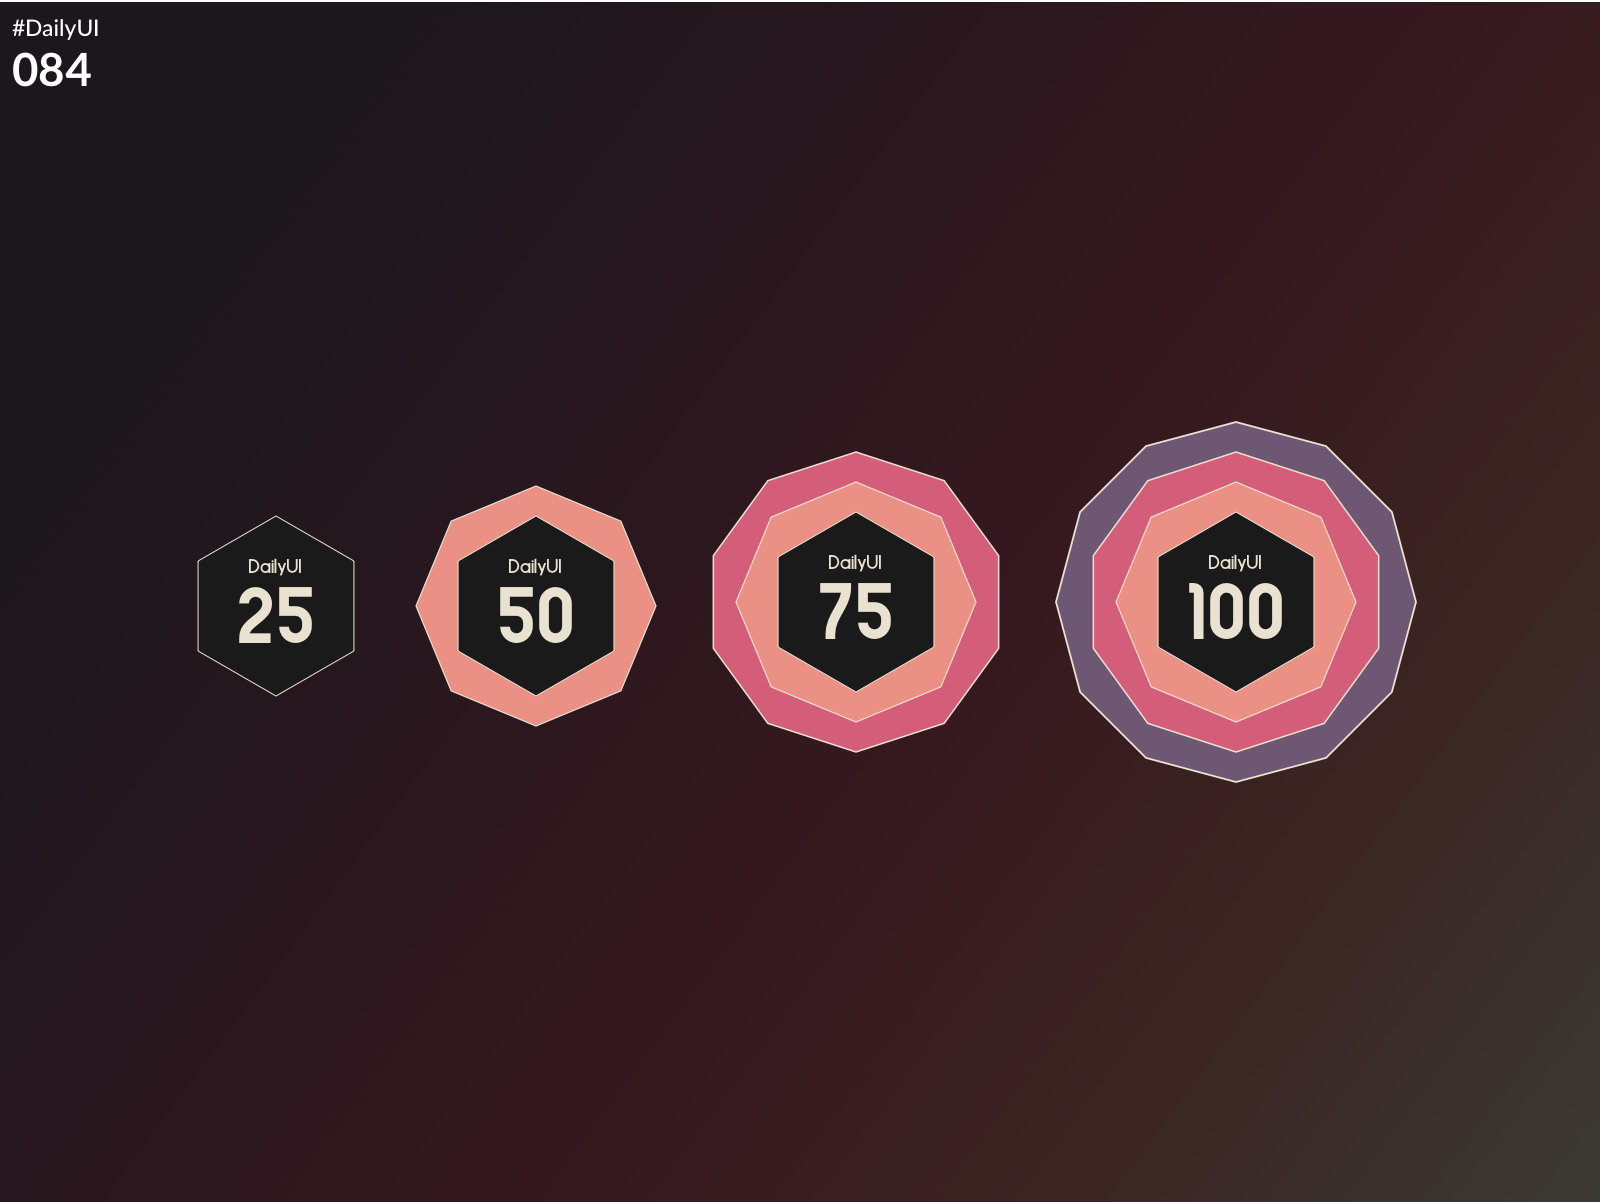 DailyUI Challenge 084 - Badge)